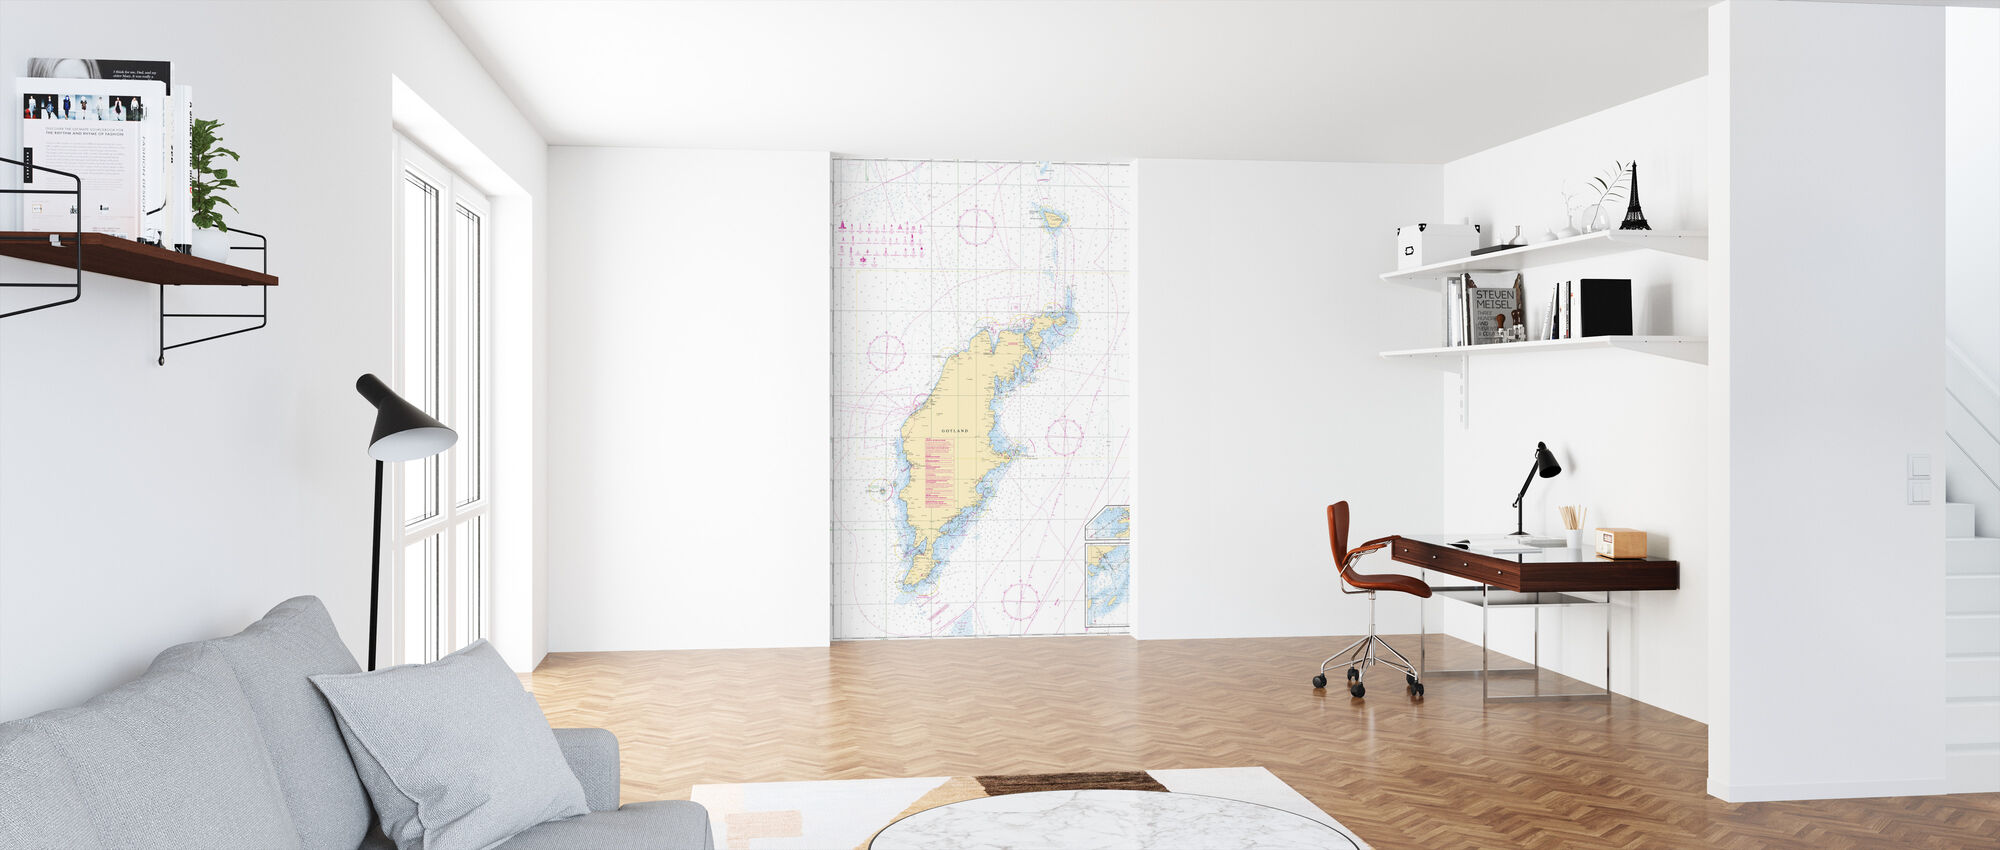 Sea Chart 73 - Gotland - Wallpaper - Office